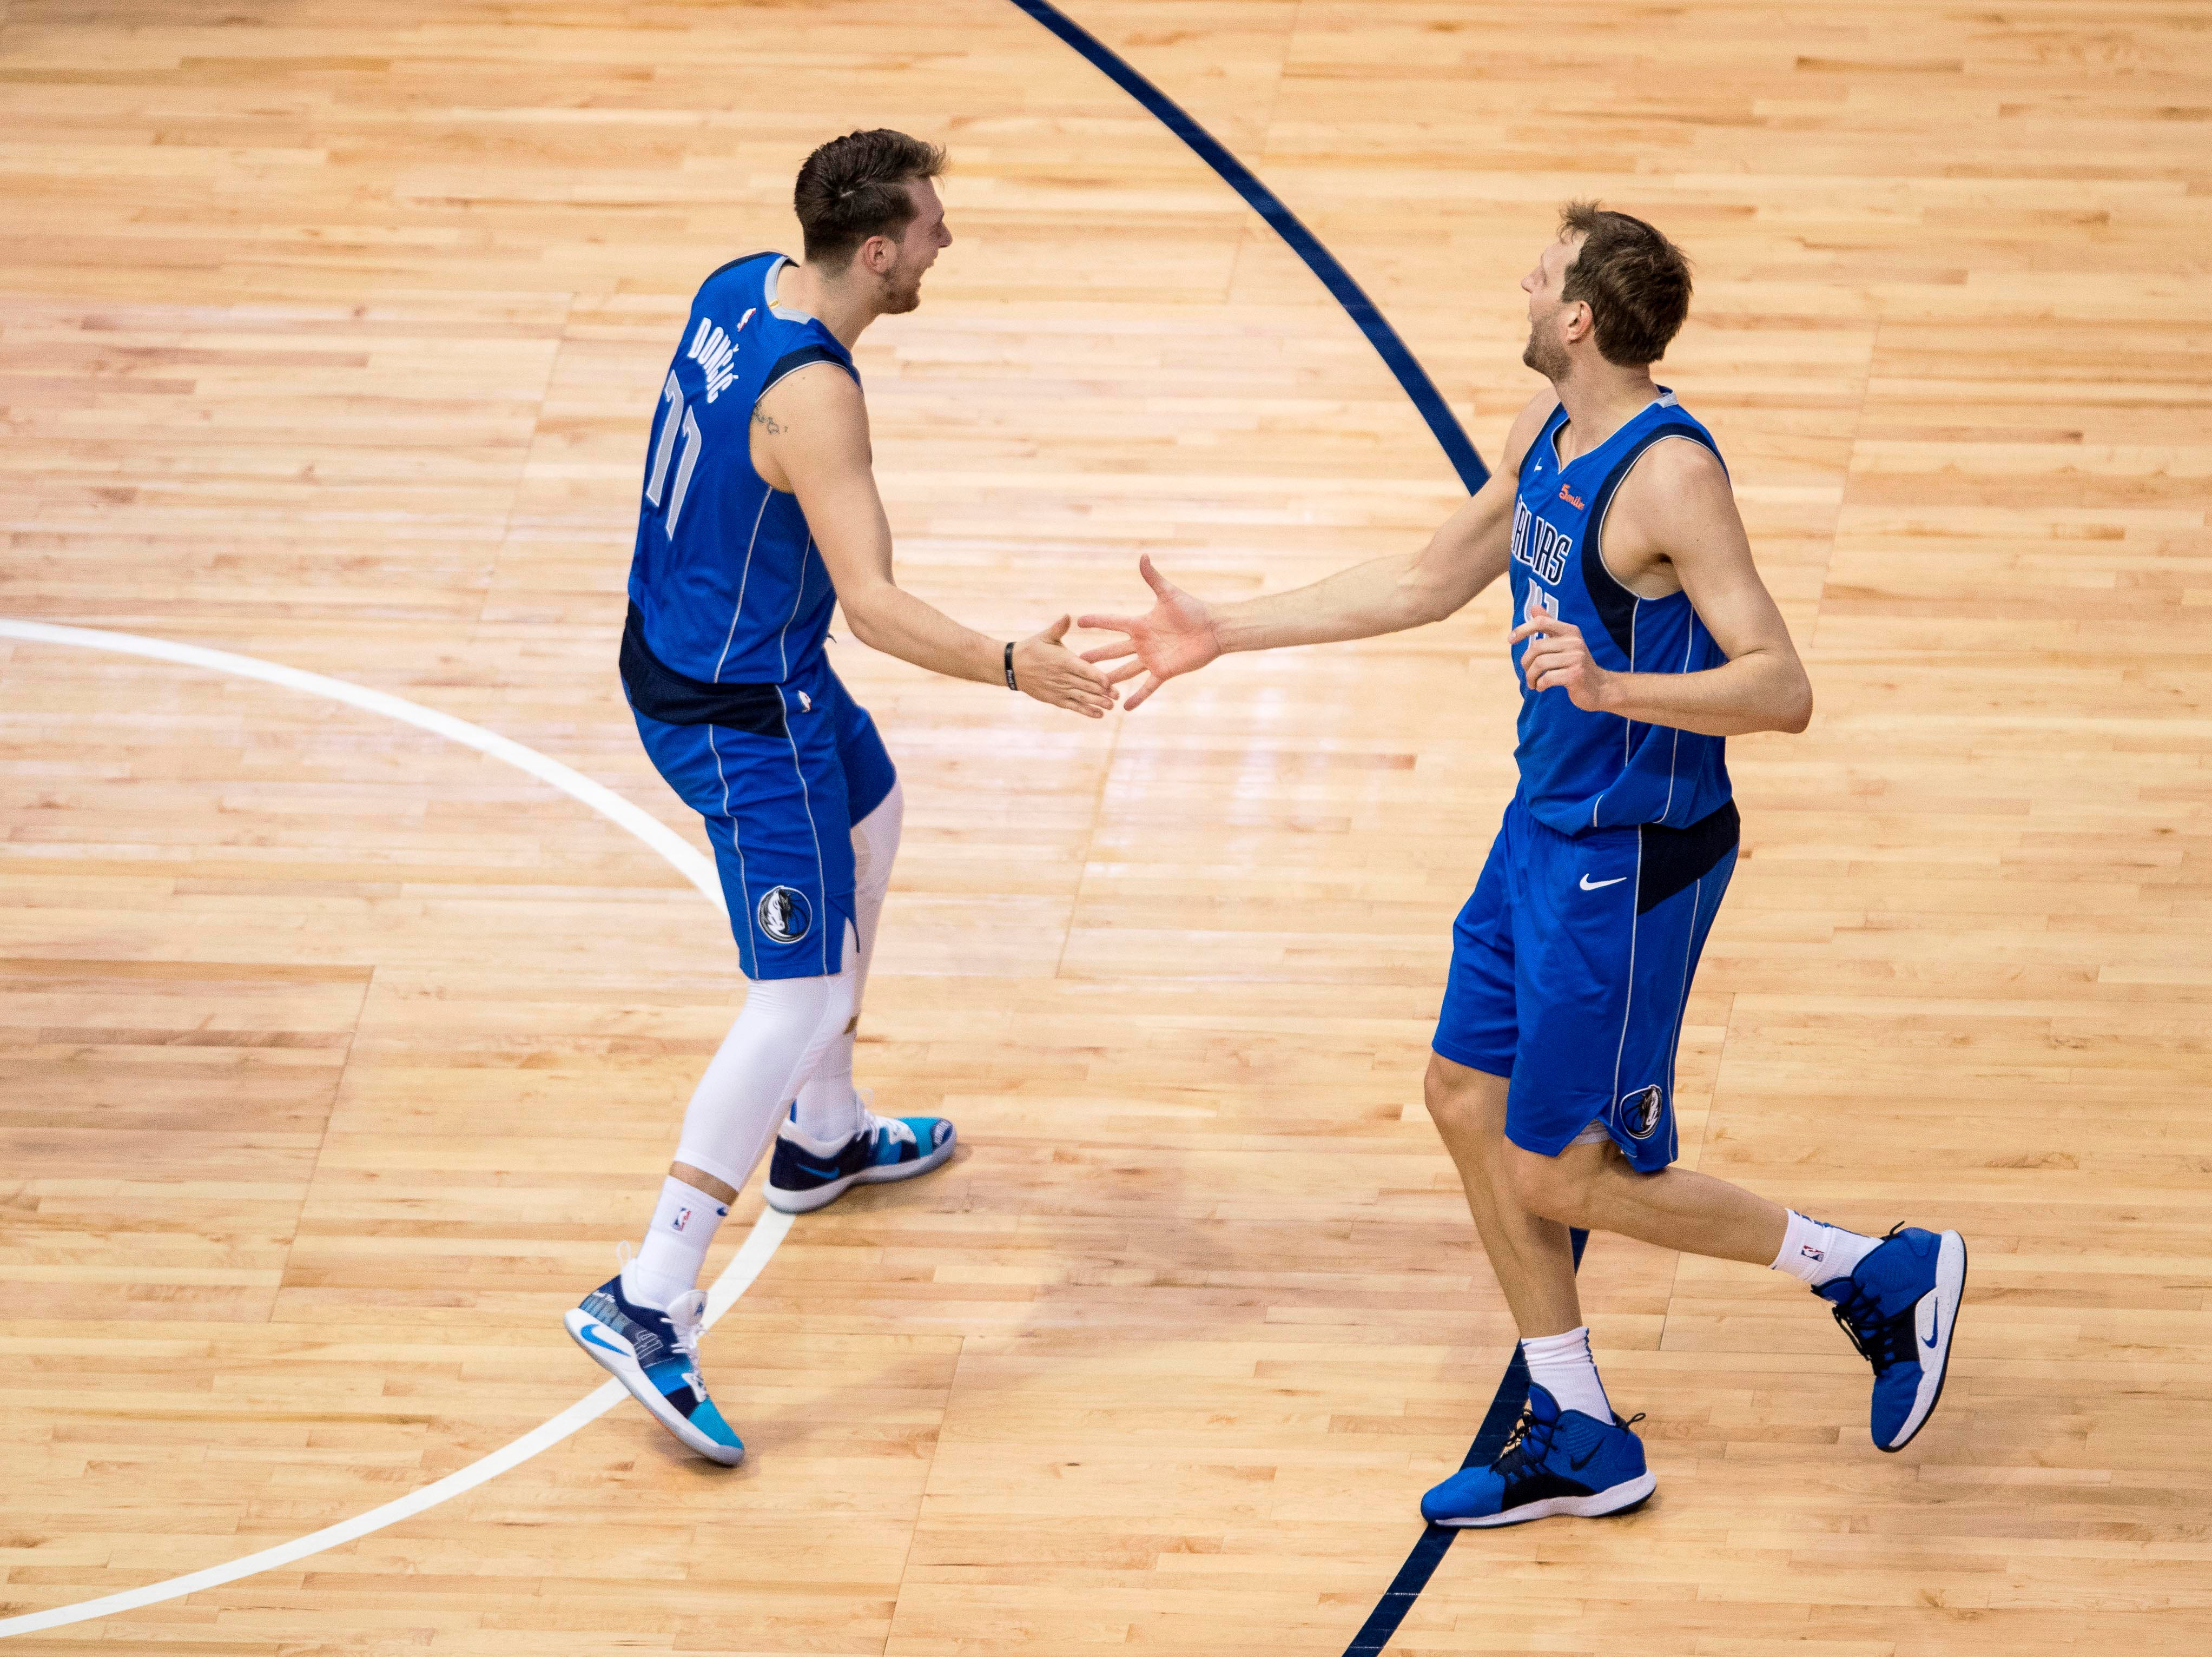 Apr 9, 2019; Dallas, TX, USA; Dallas Mavericks forward Luka Doncic (77) and forward Dirk Nowitzki (41) celebrate during the second half against the Phoenix Suns at the American Airlines Center. Mandatory Credit: Jerome Miron-USA TODAY Sports